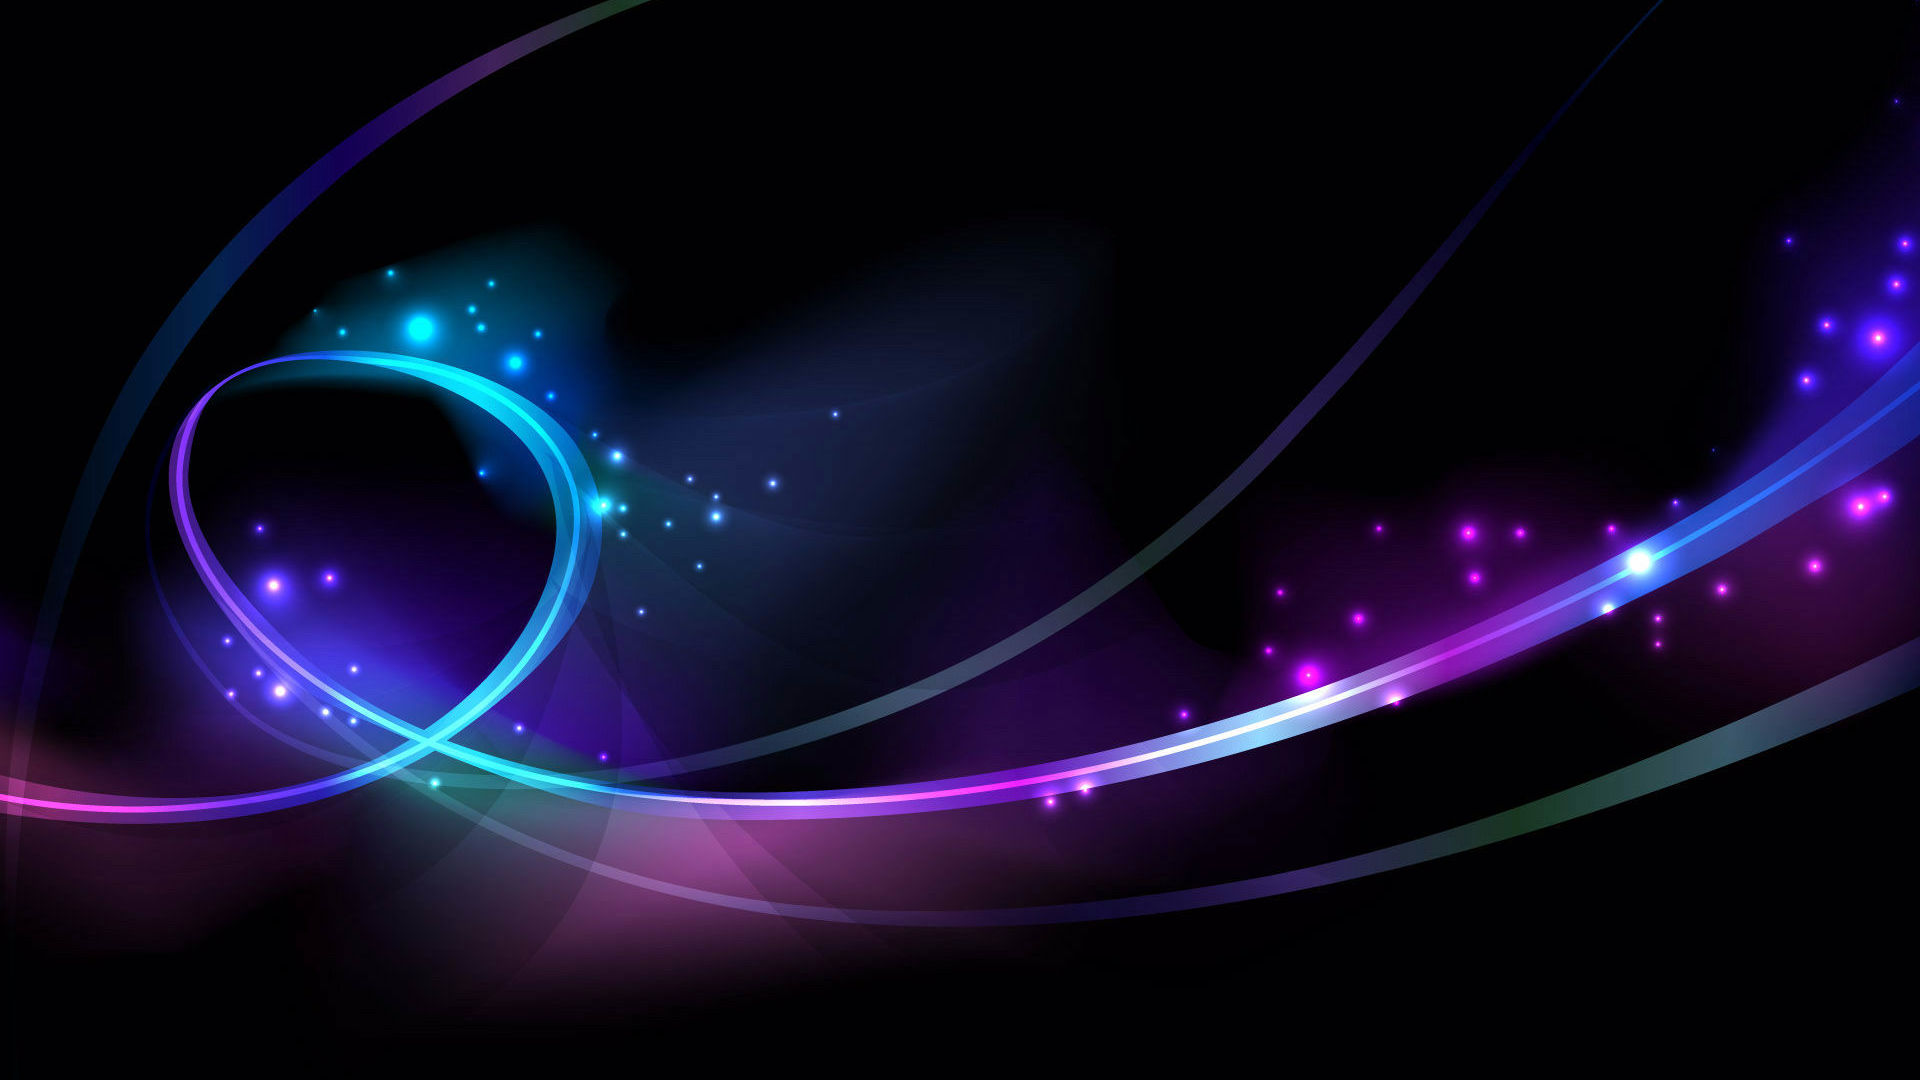 Dark Desktop Backgrounds HD Group 88